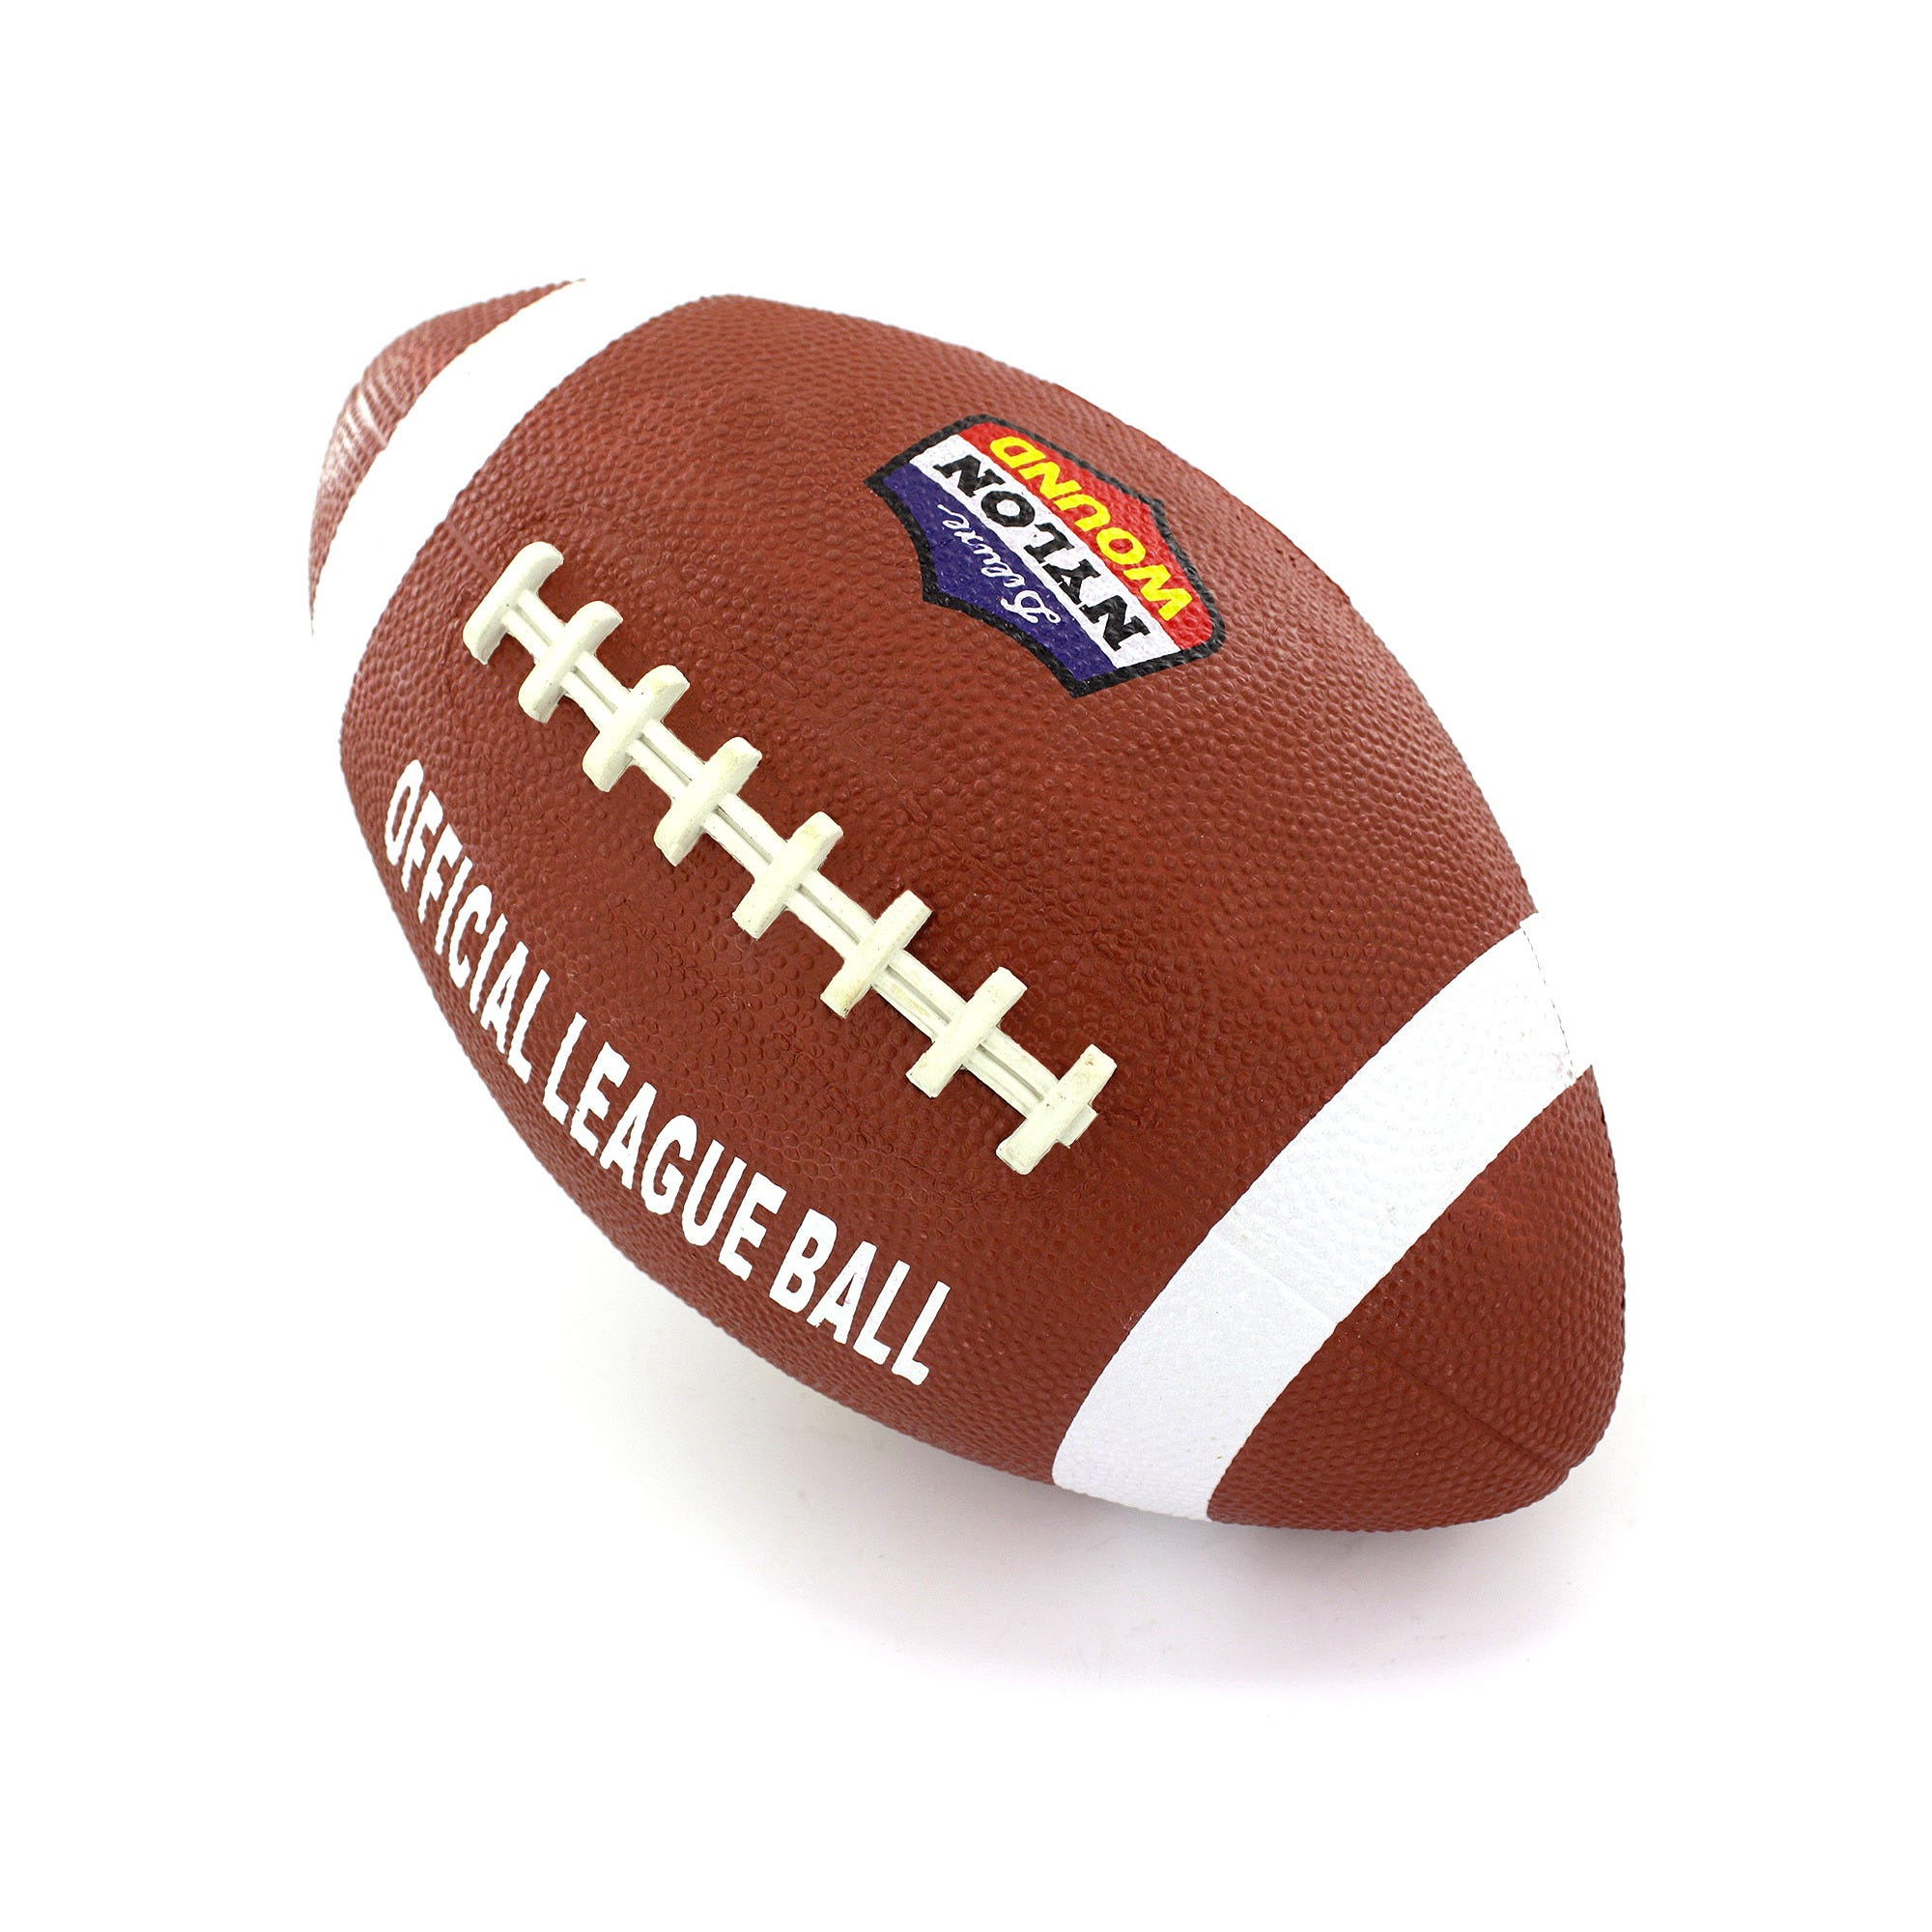 official-size-football